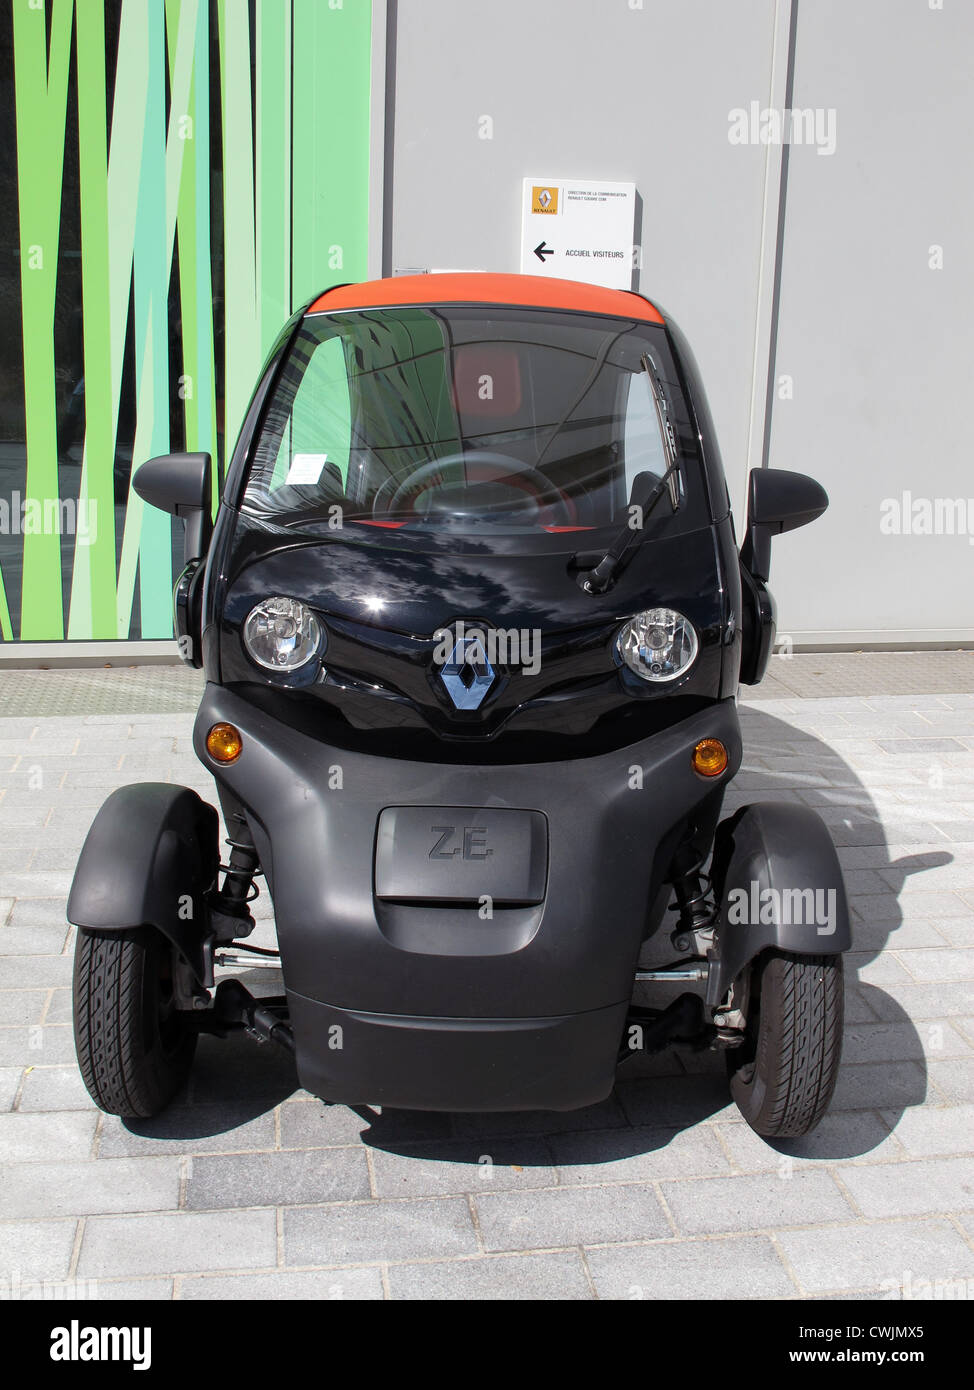 renault twizy electric car stock photos renault twizy electric car stock images alamy. Black Bedroom Furniture Sets. Home Design Ideas